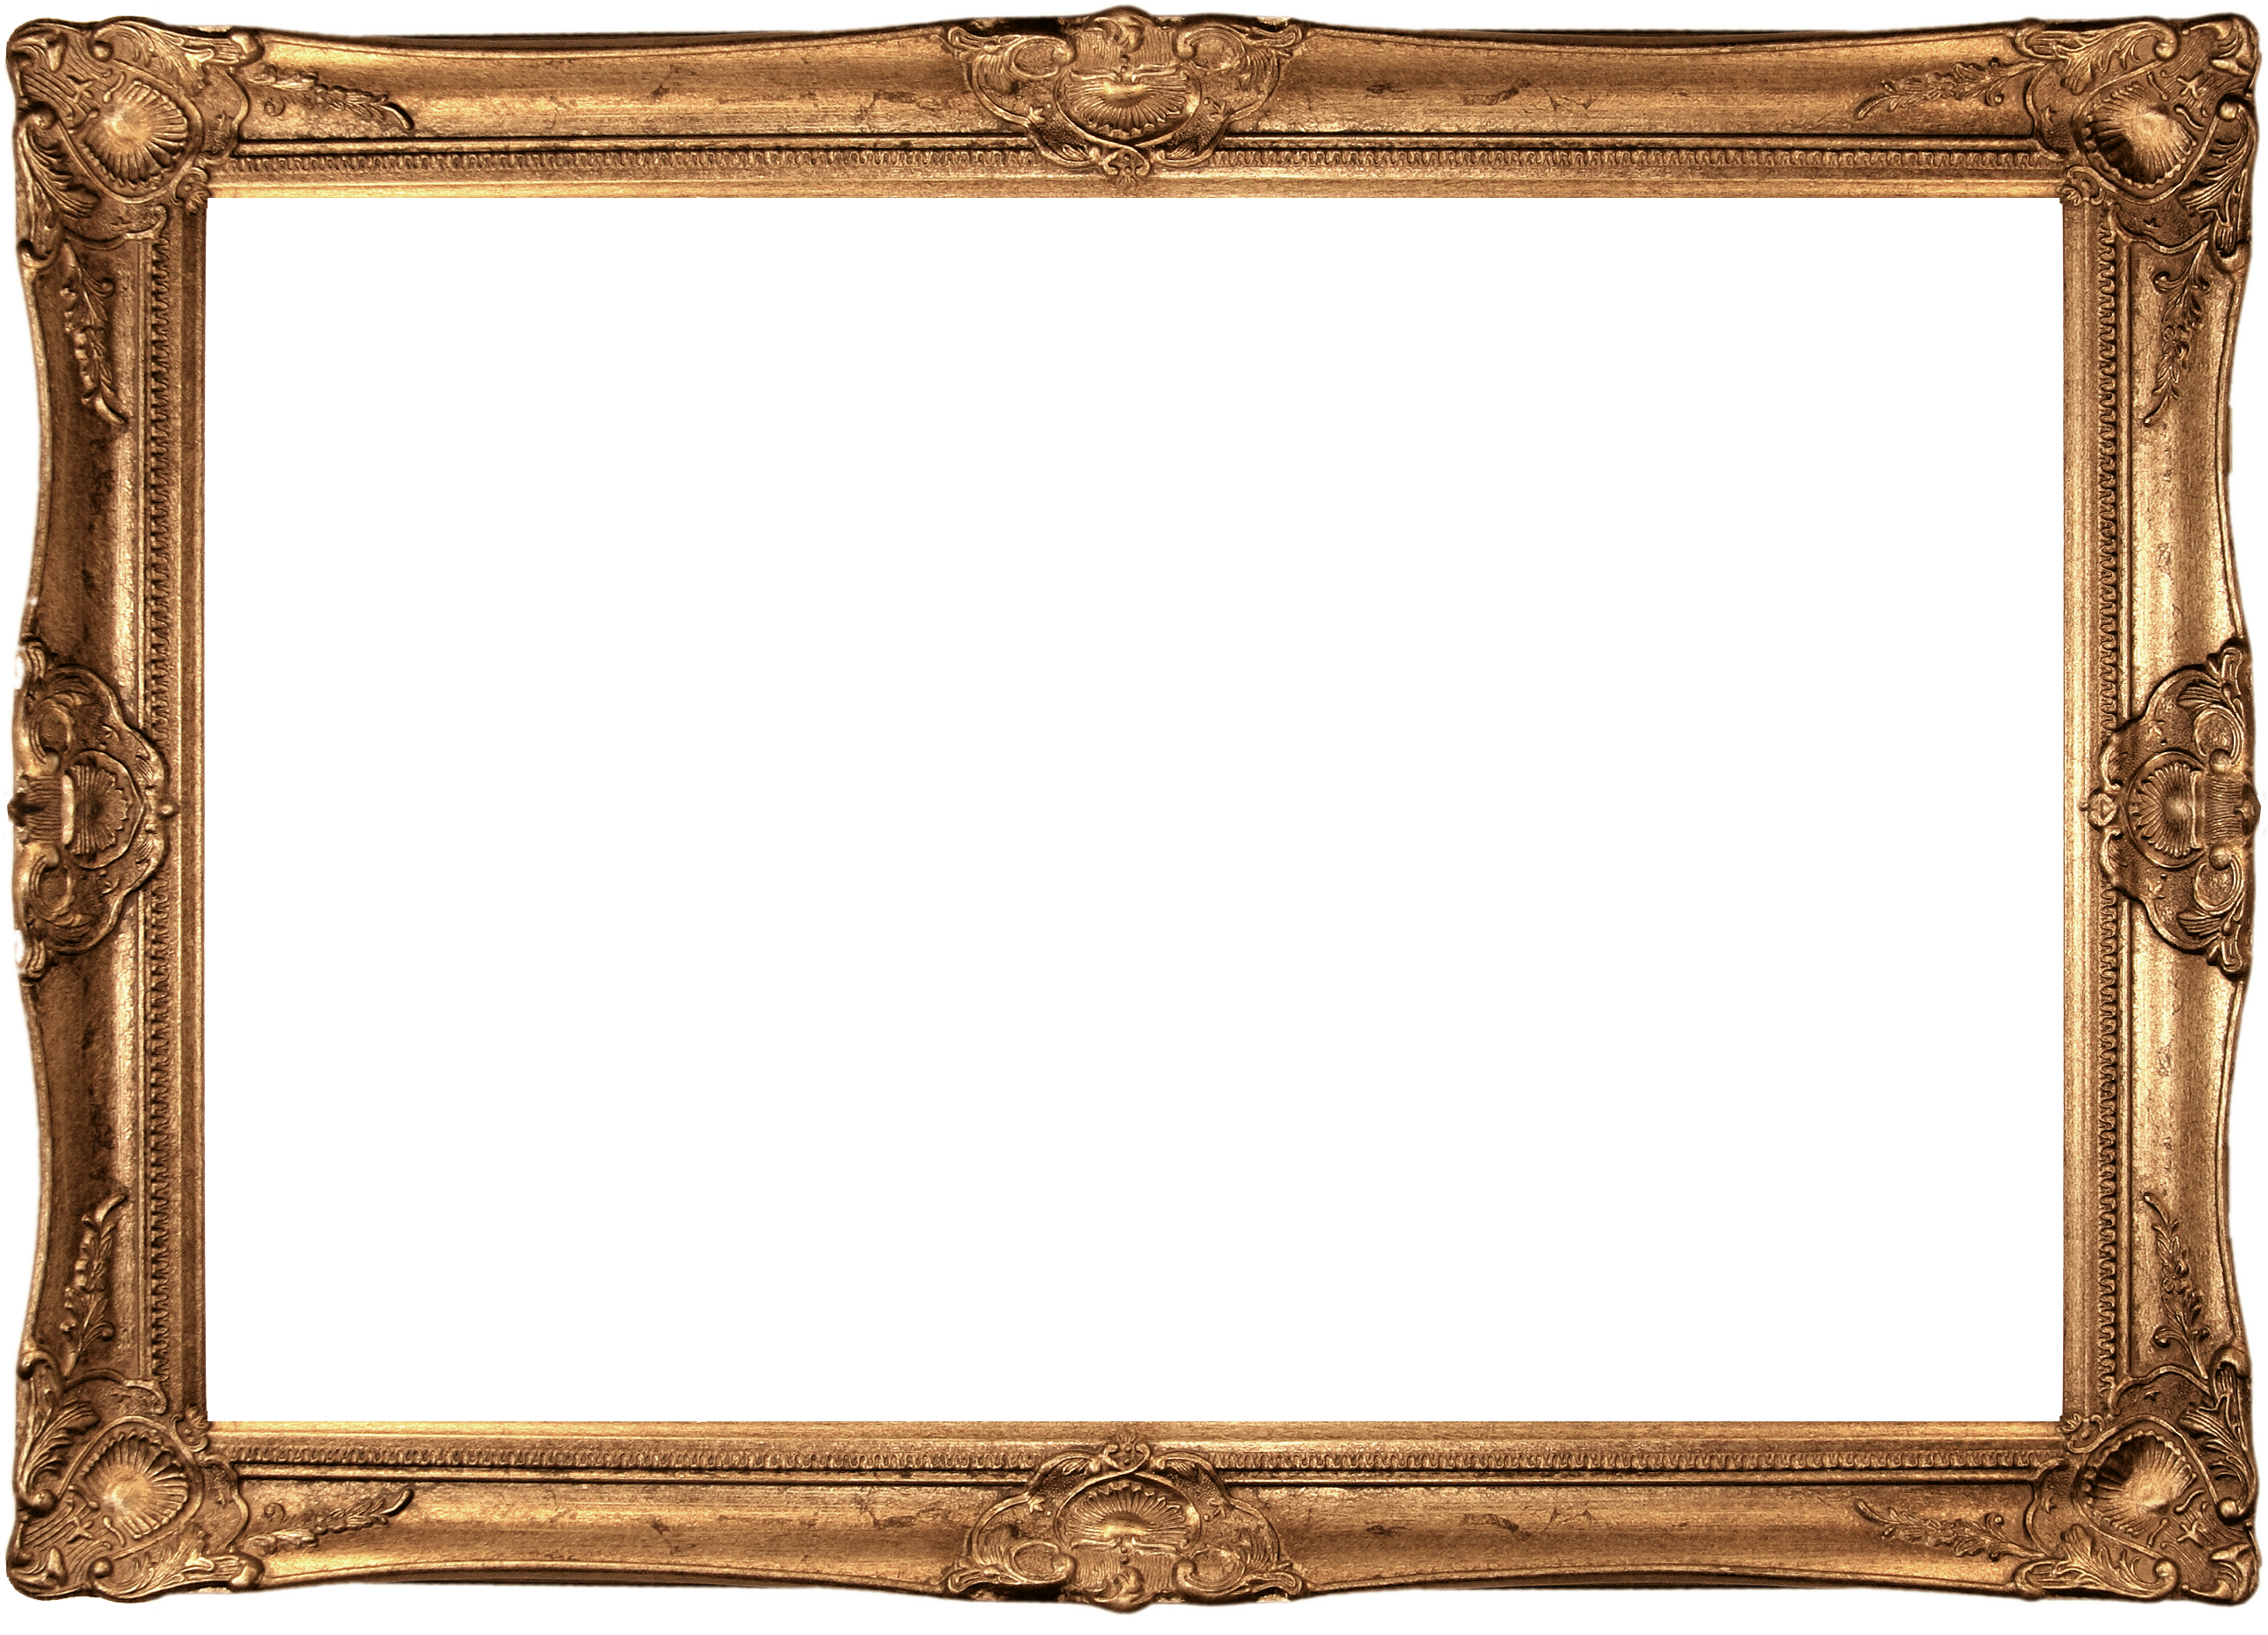 renaissance-gold-11×14-frame-for-wall-decoration-ideas-11×14-black ...